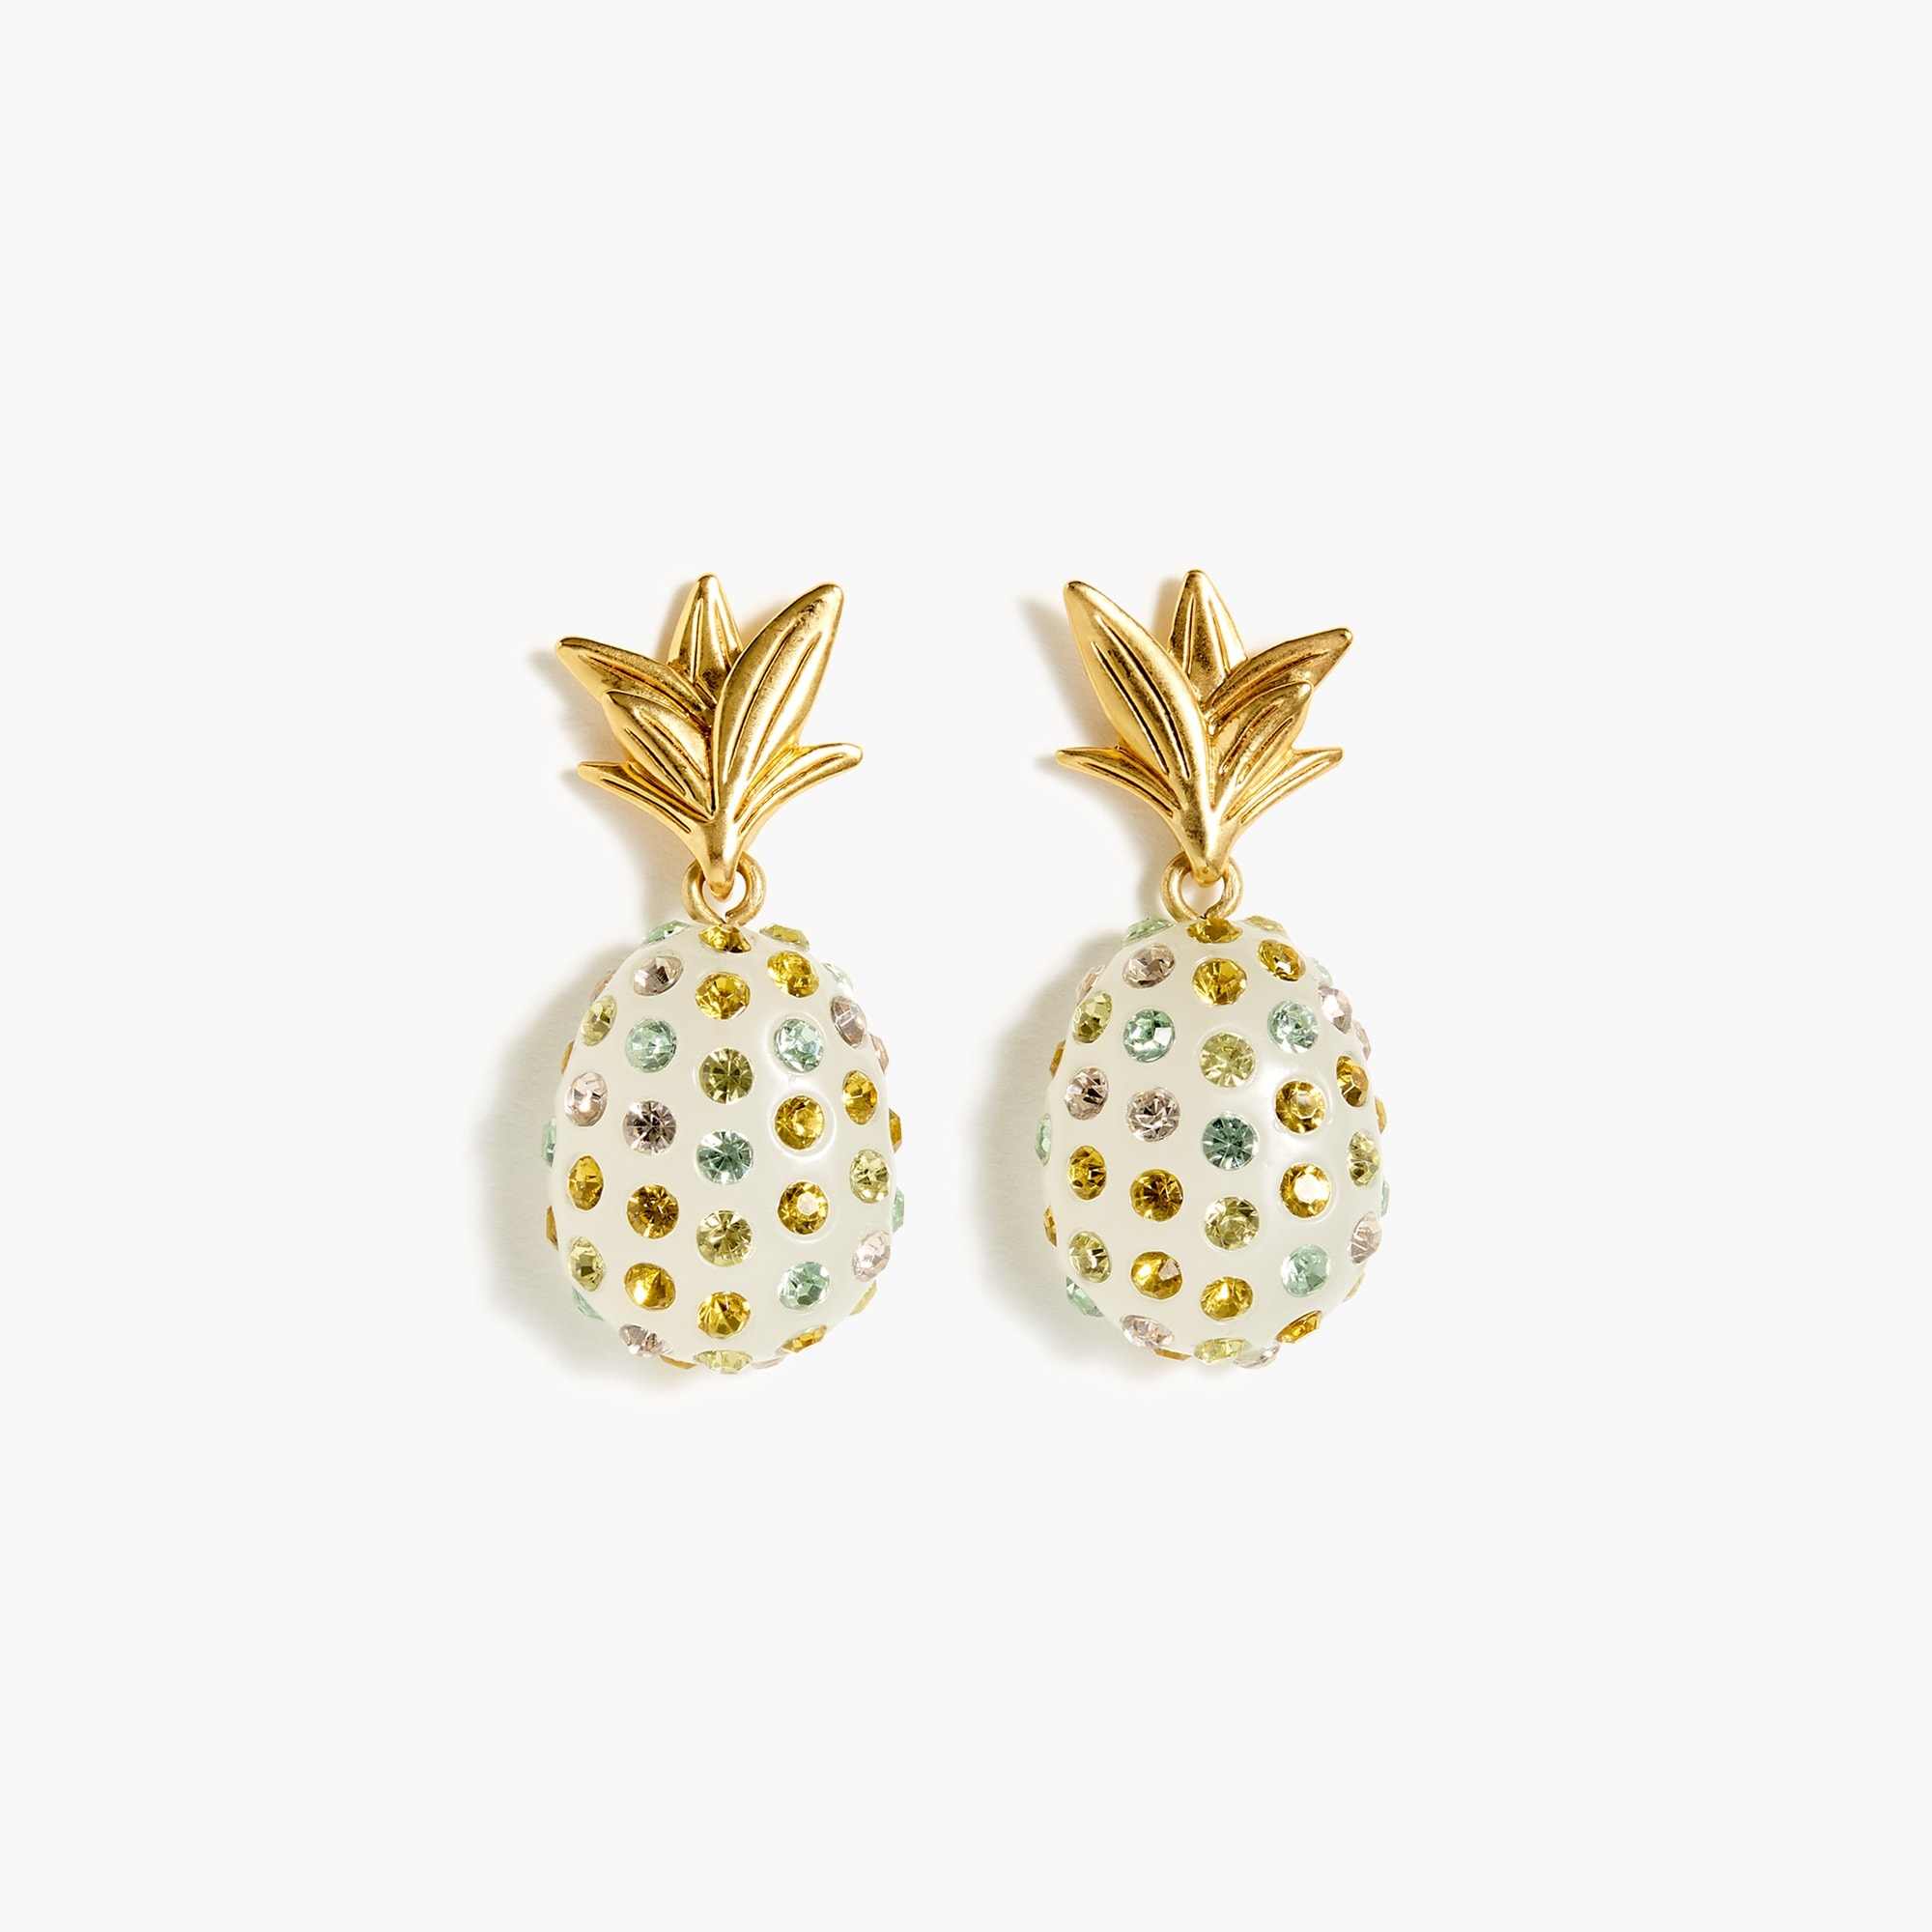 Sparkly pineapple earrings